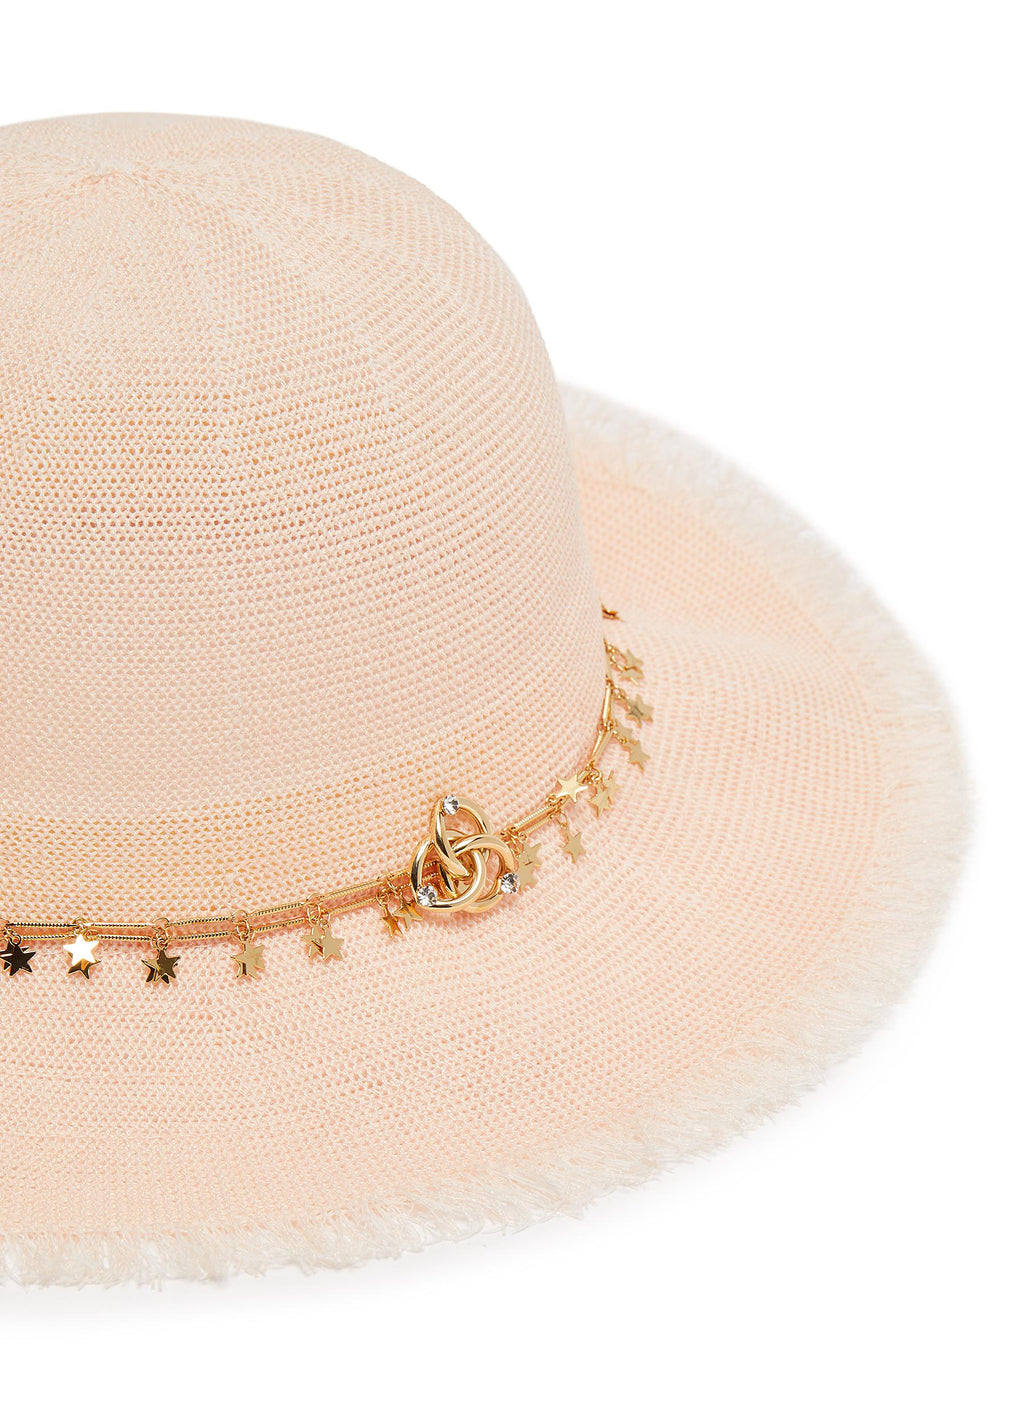 Star chain linen straw hat